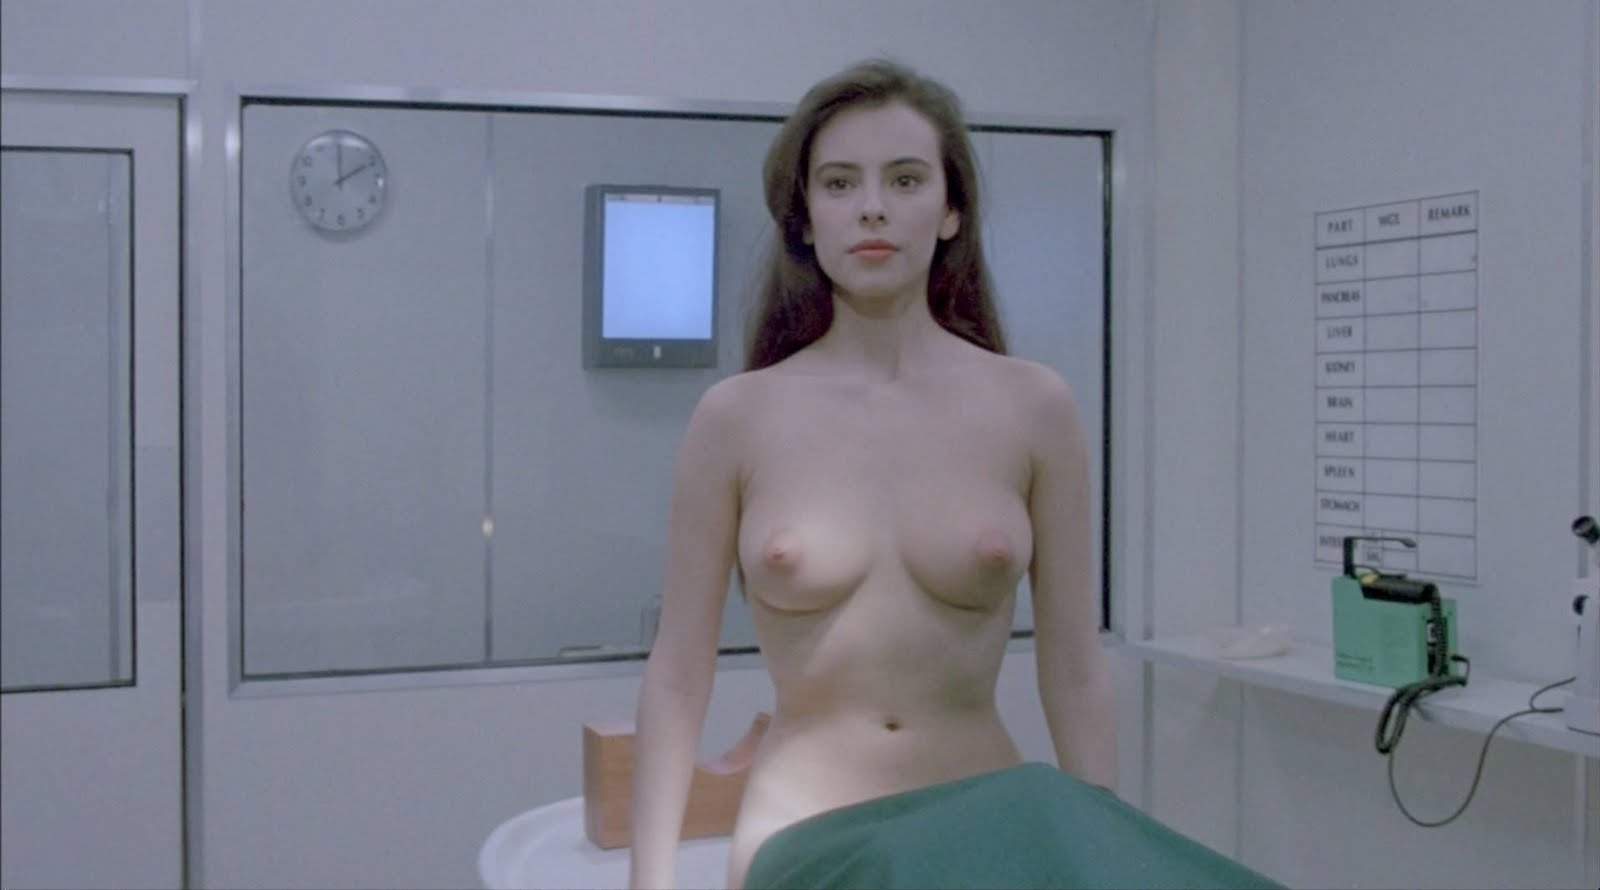 Vampire nude girl in movie scenes exposed images